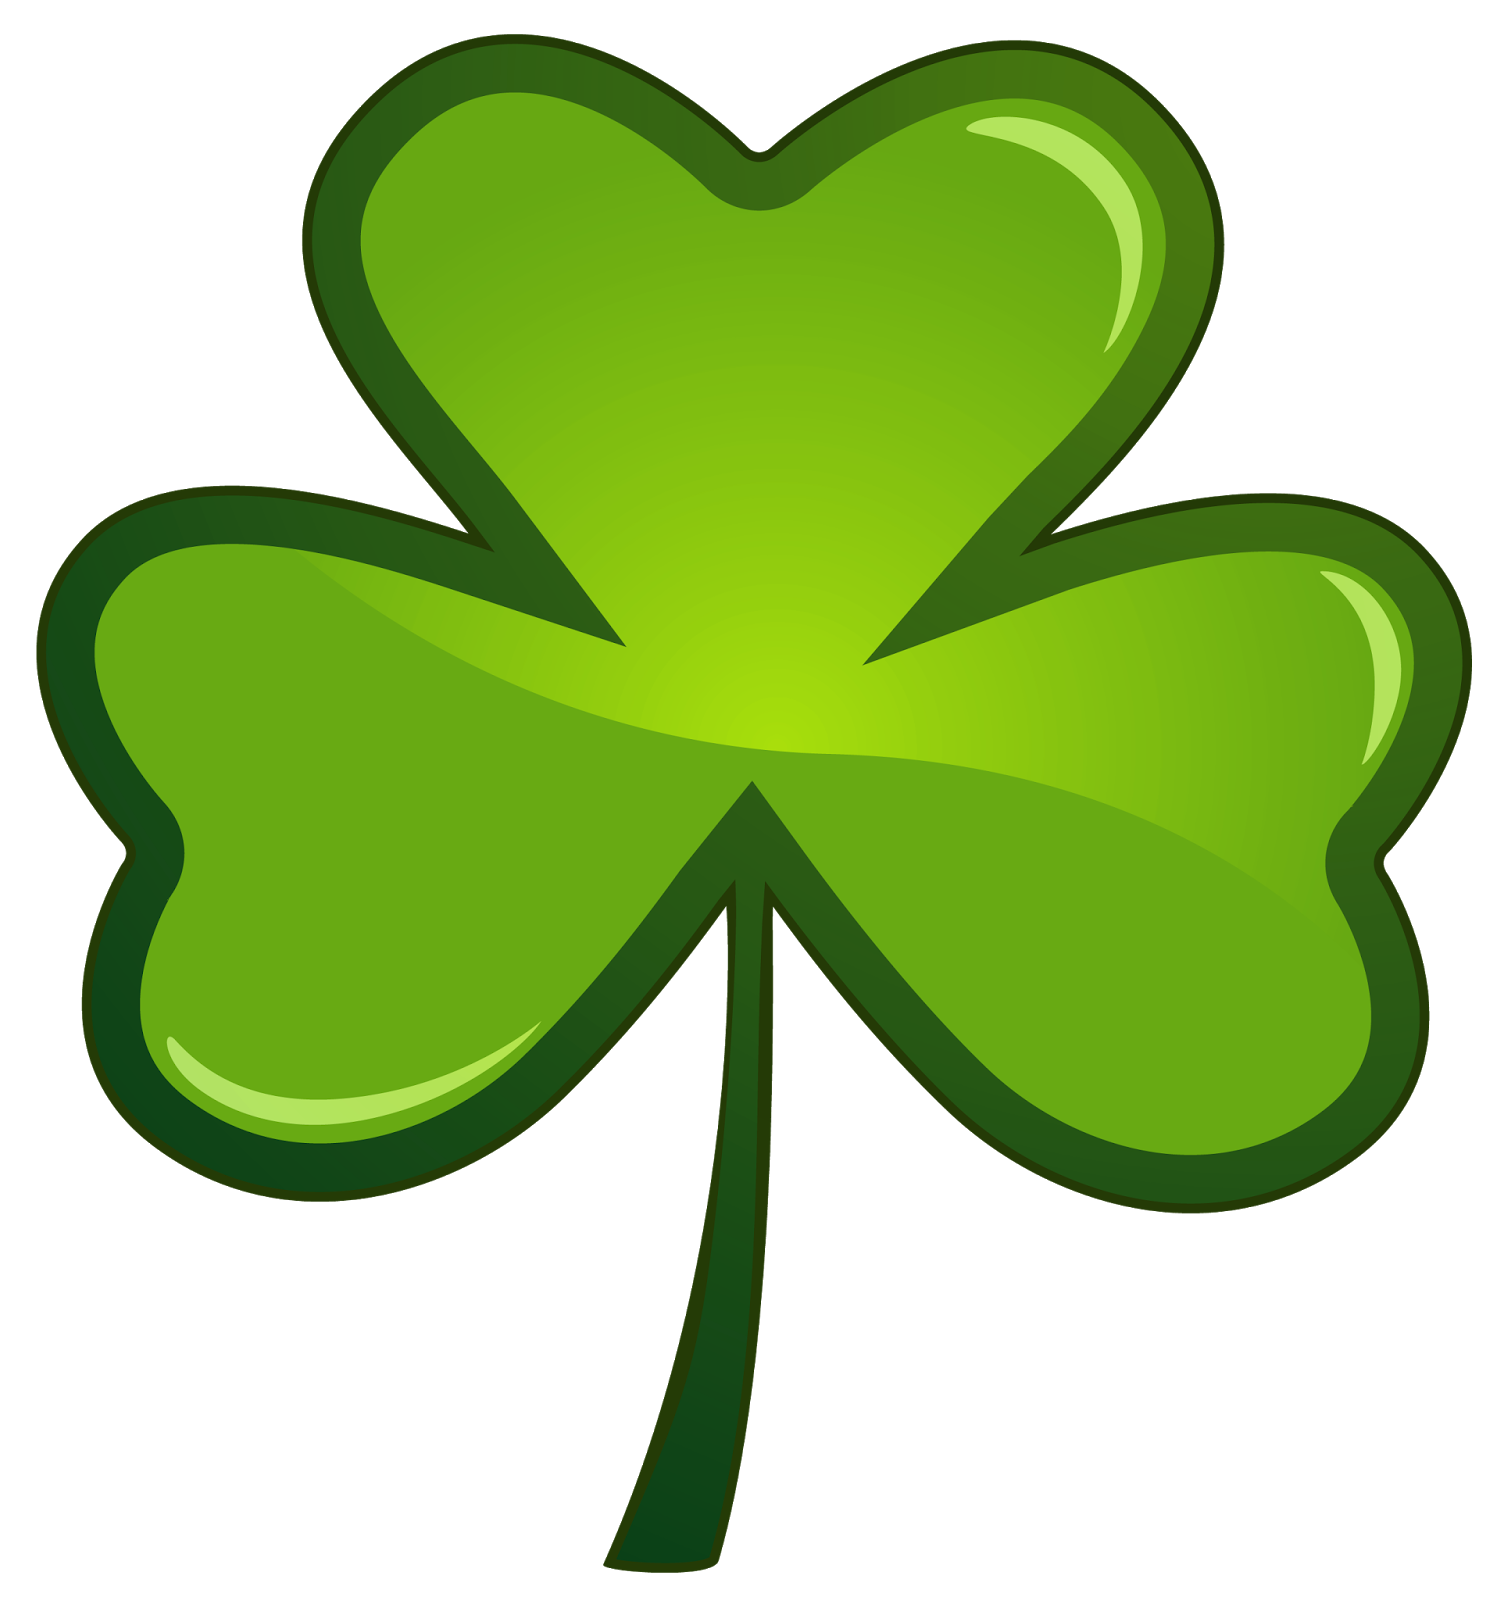 March clipart clover patch, March clover patch Transparent.